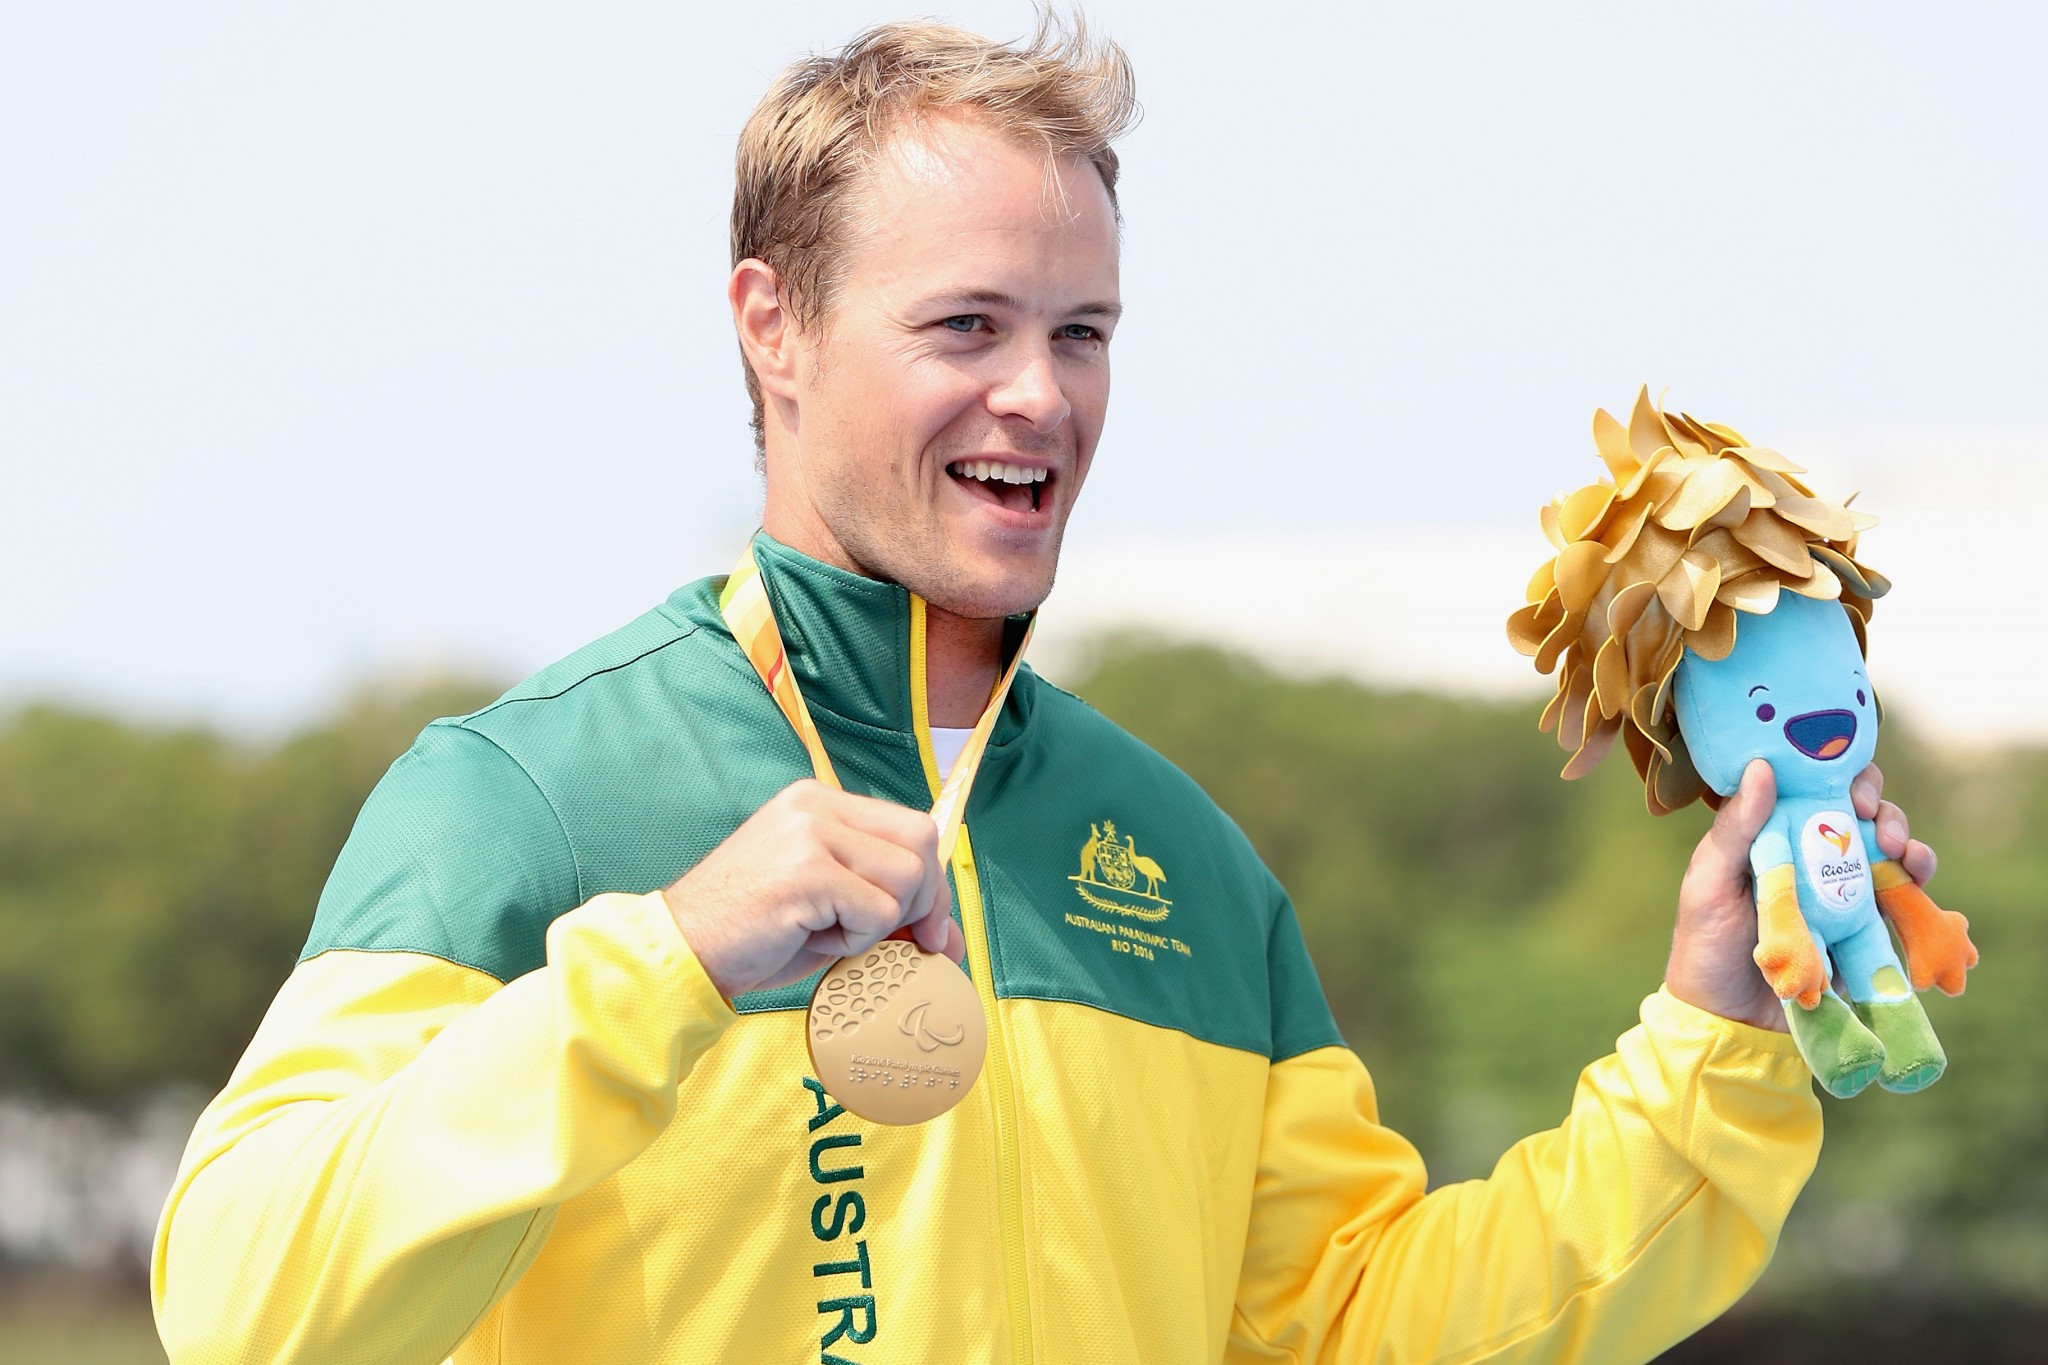 Curtis McGrath has the opportunity to win two gold medals in Tokyo if he is selected for the team ©Getty Images